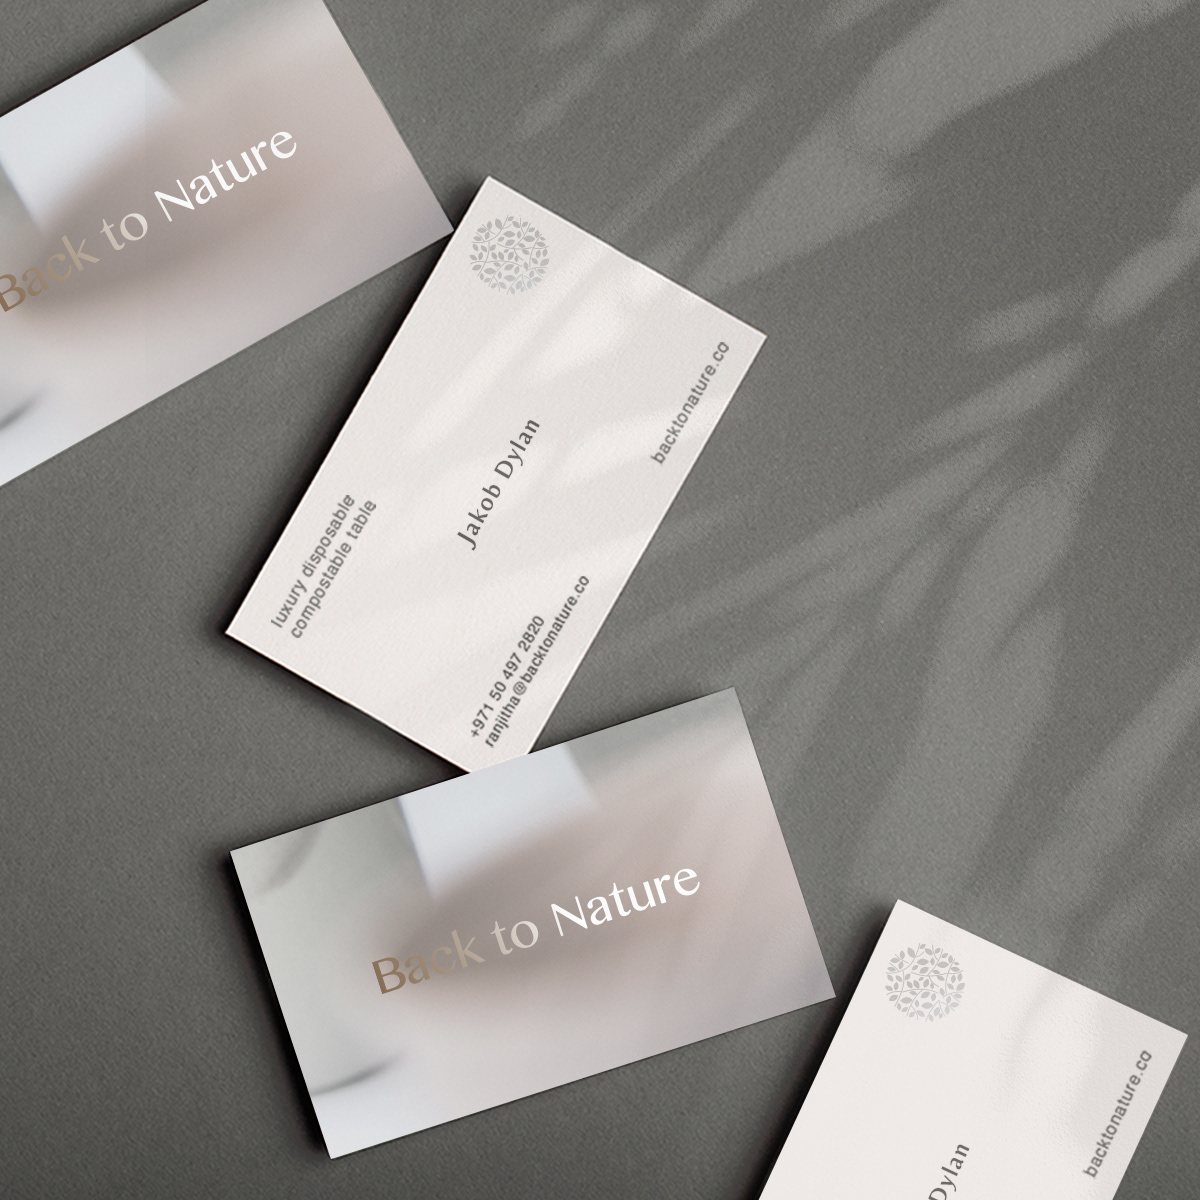 Stationery design for back to nature